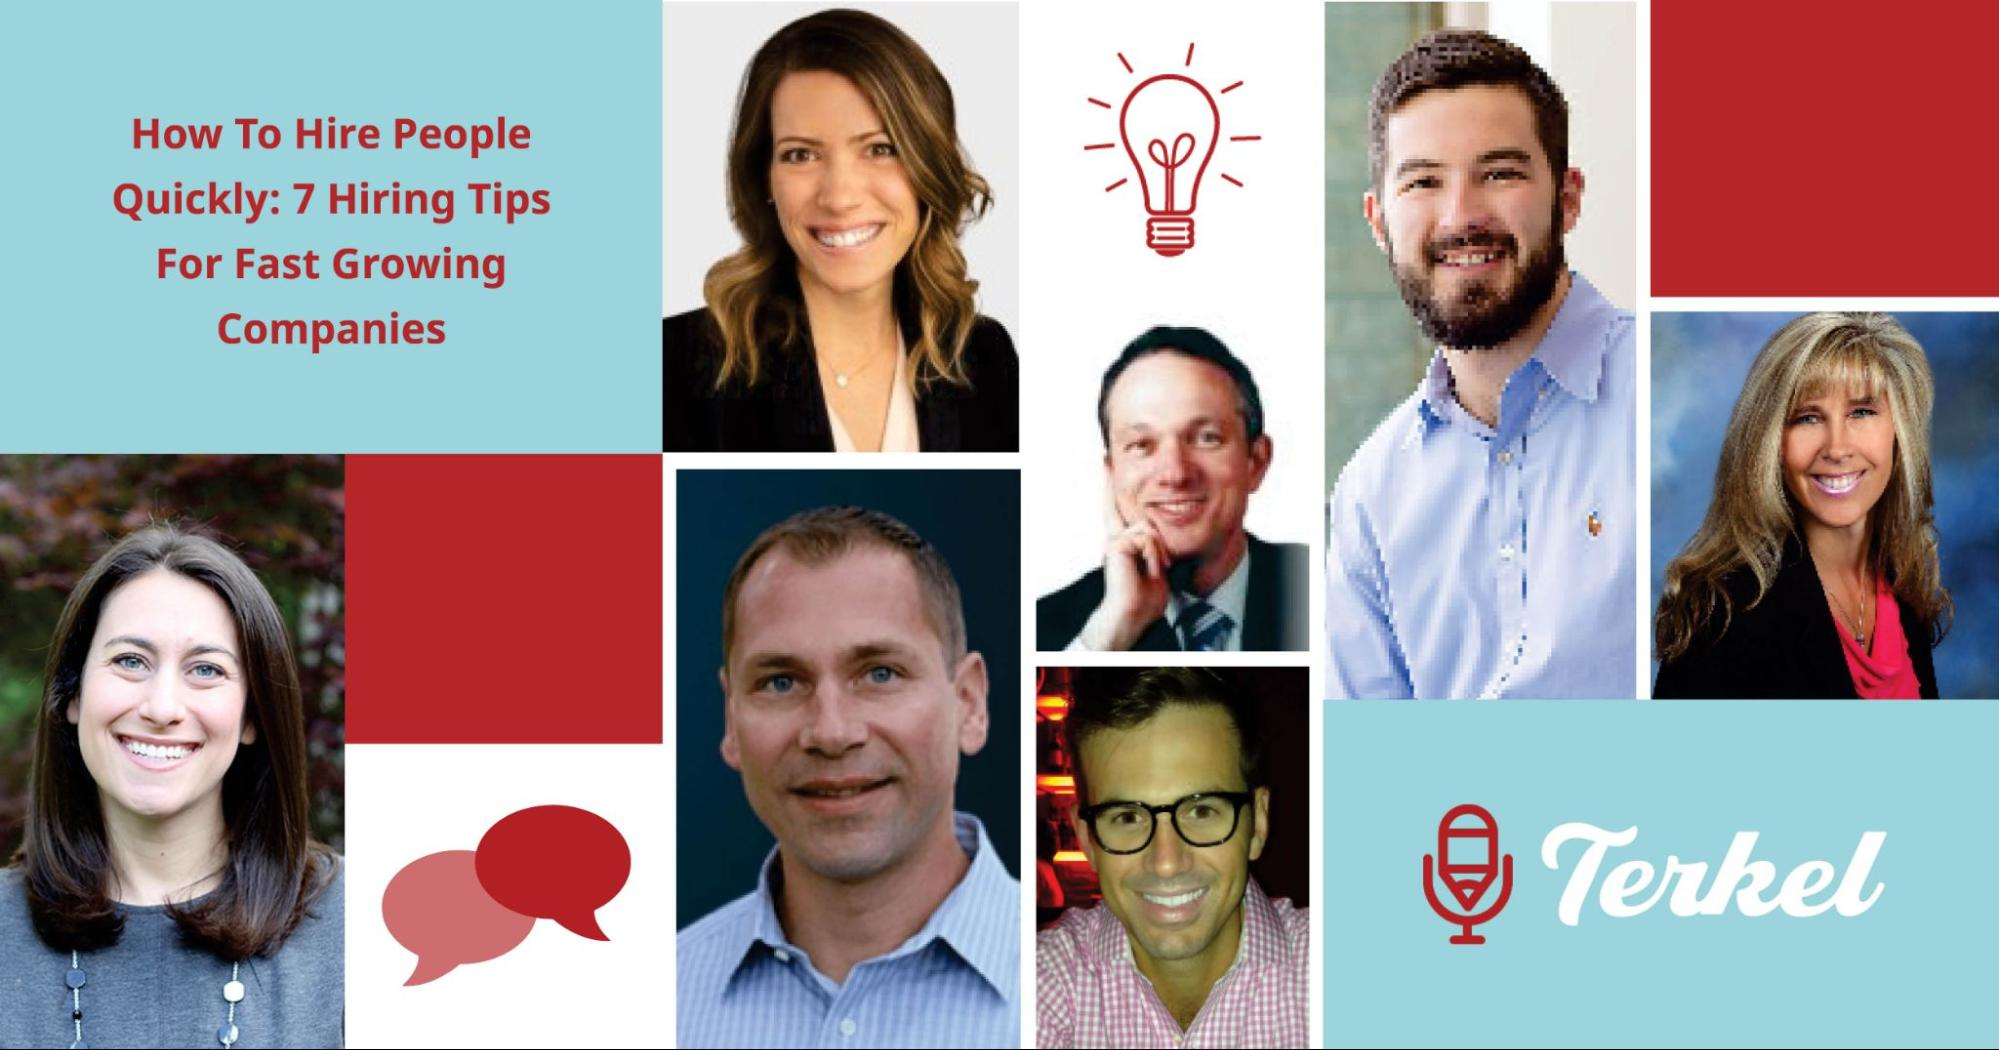 How To Hire People Quickly - 7 Hiring Tips For Fast Growing Companies